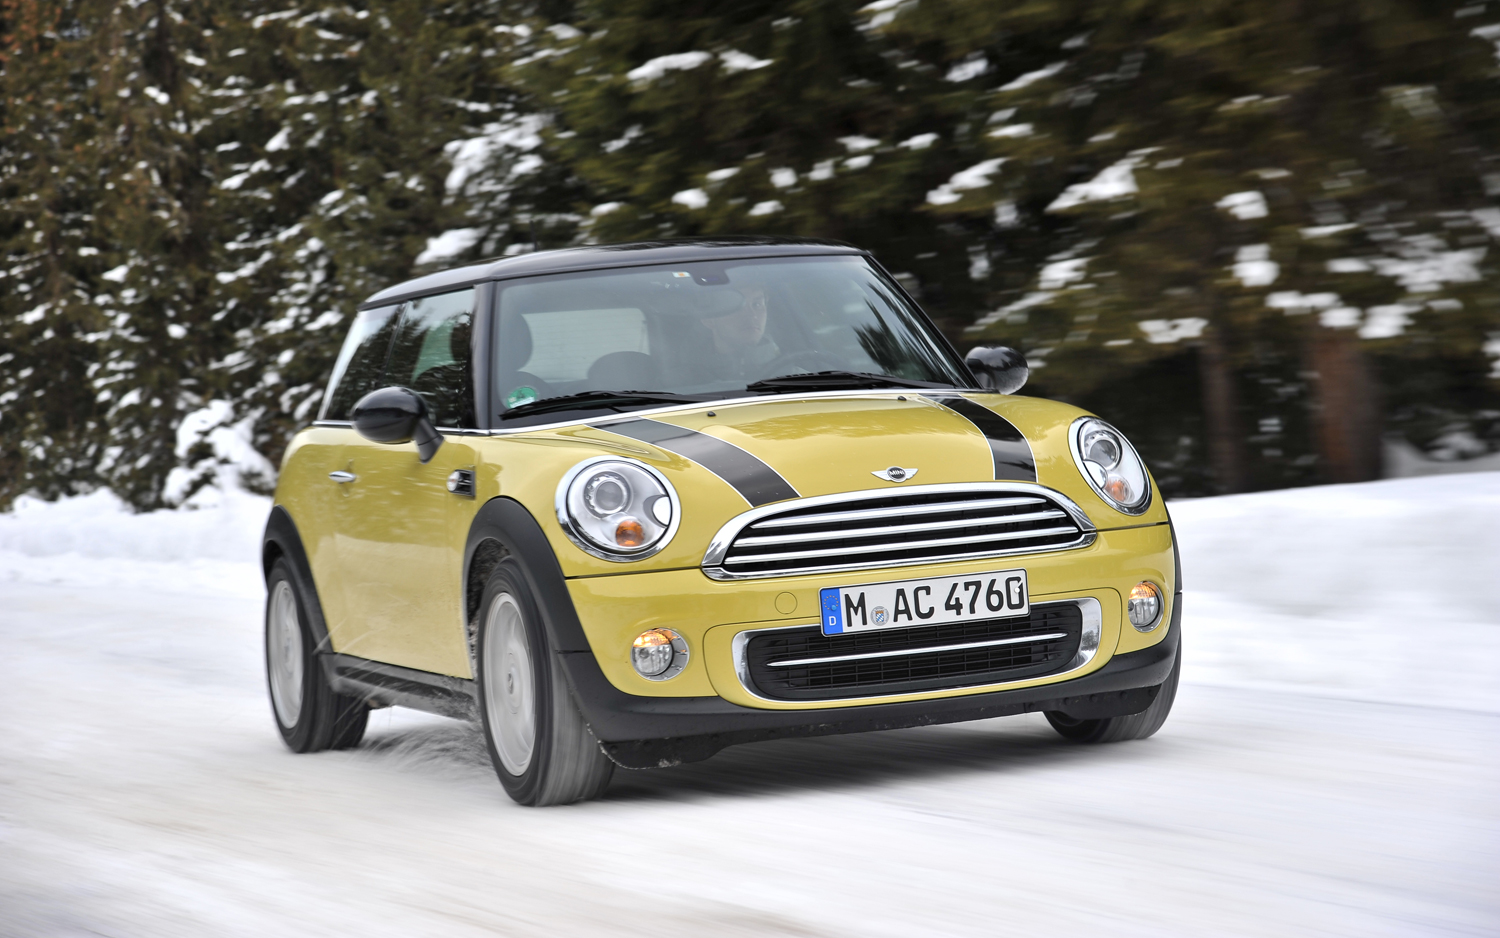 2012 mini cooper and cooper s photo gallery - motortrend